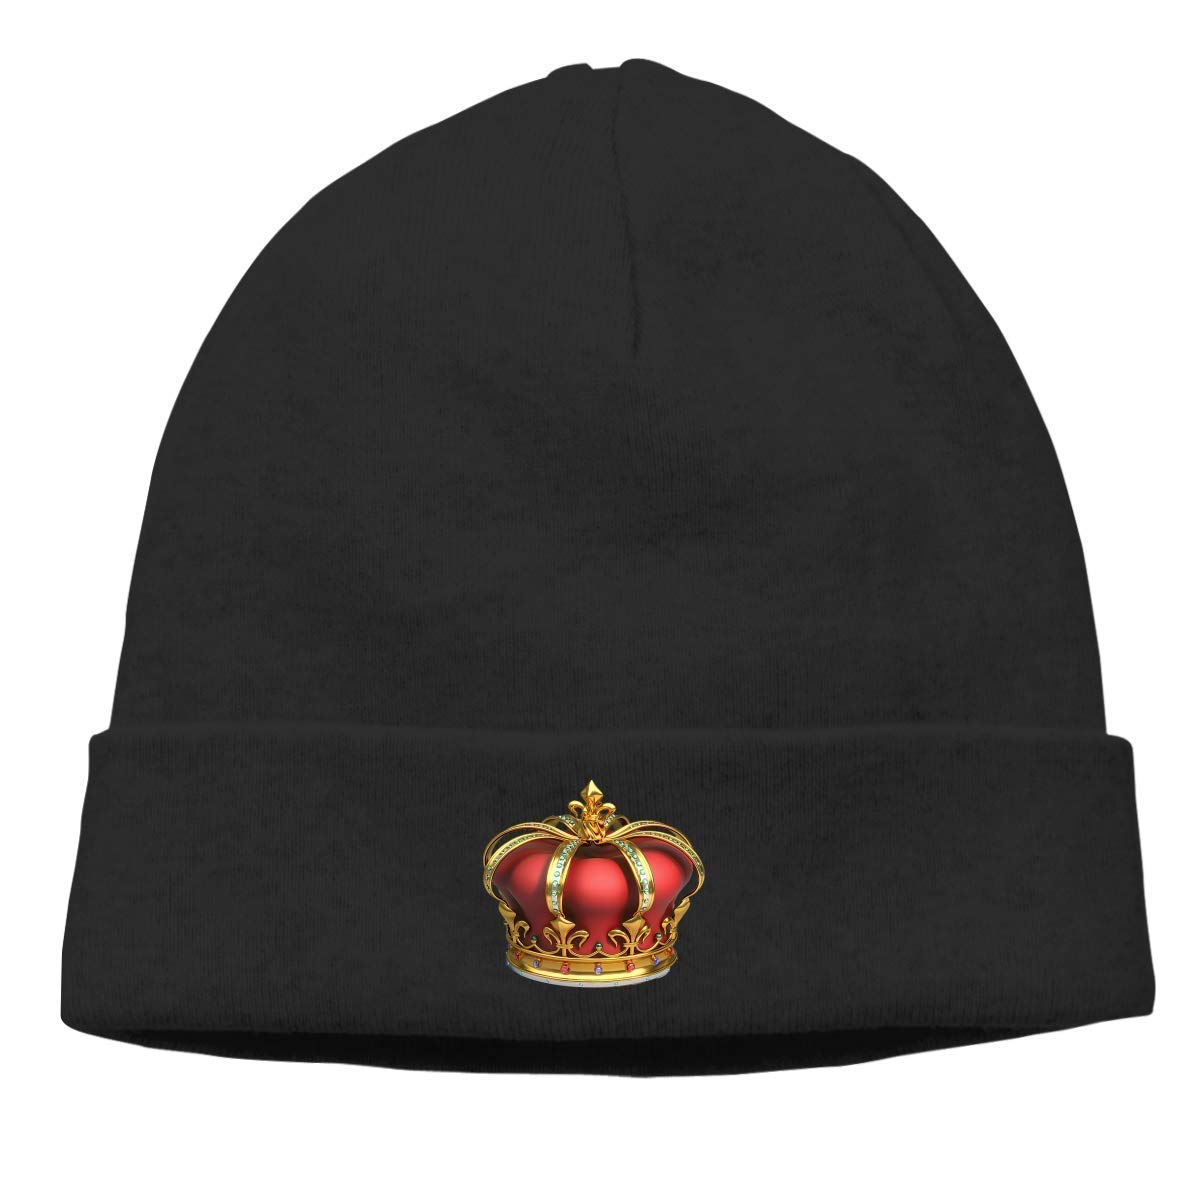 6934b875c98 Amazon.com  Novelty for Unisex Hats   Caps Accessories Skull Cap Knitted Hat  Gold and Red Crown with Diamonds Unisex Cuffed Plain Skull Knit Hat Cap  Head ...